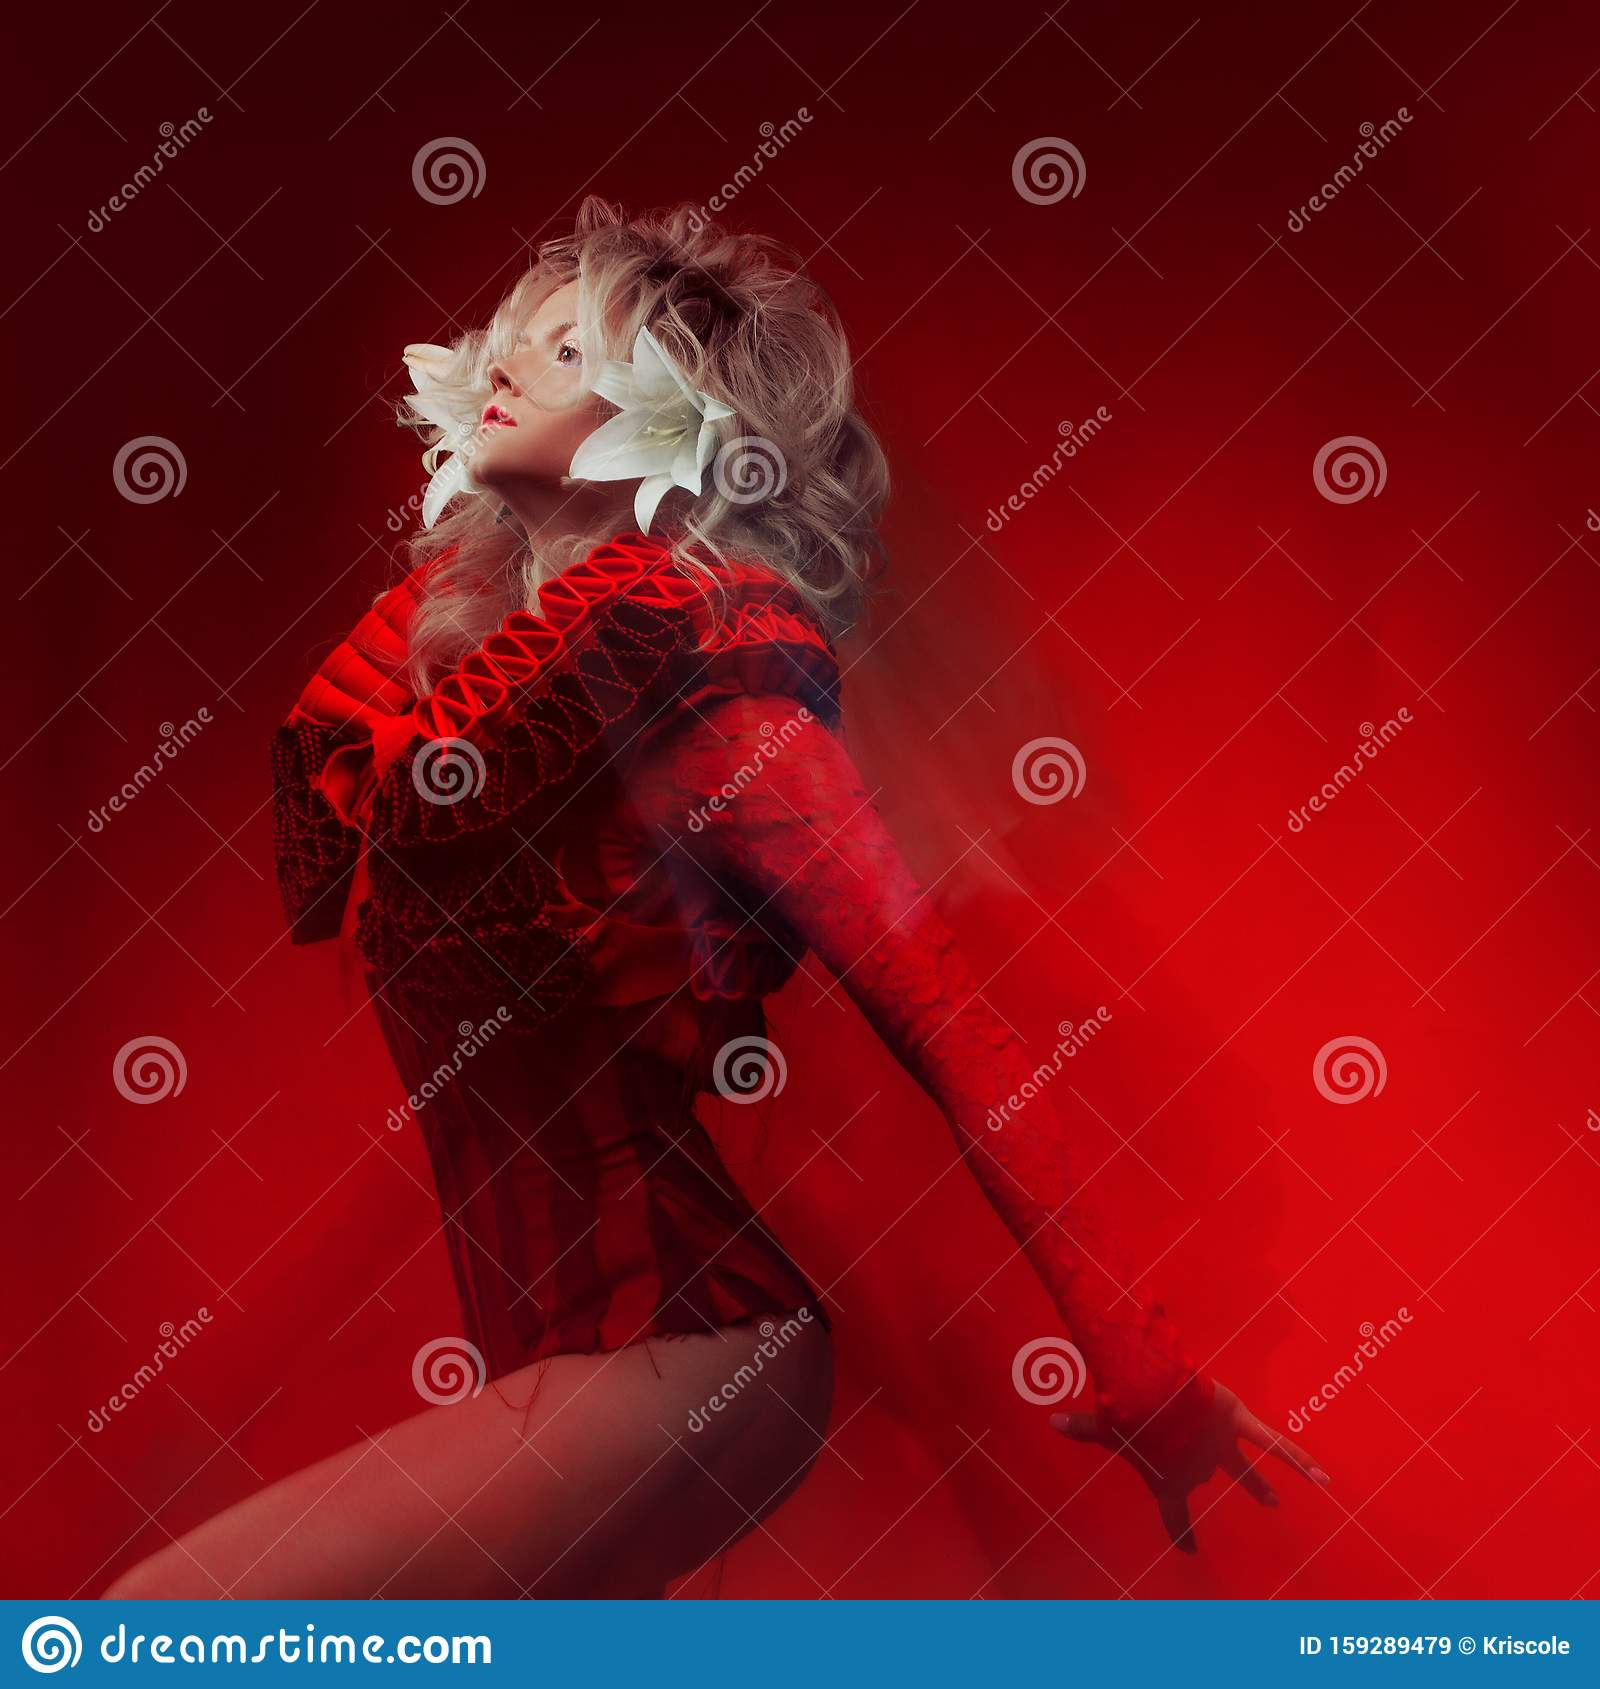 Shades Of Red Portrait Of Bizar Attractive Woman With Fashion Make Up In Fantasy Outfit Posing On A Red Background Stock Image Image Of Floral Cloth 159289479